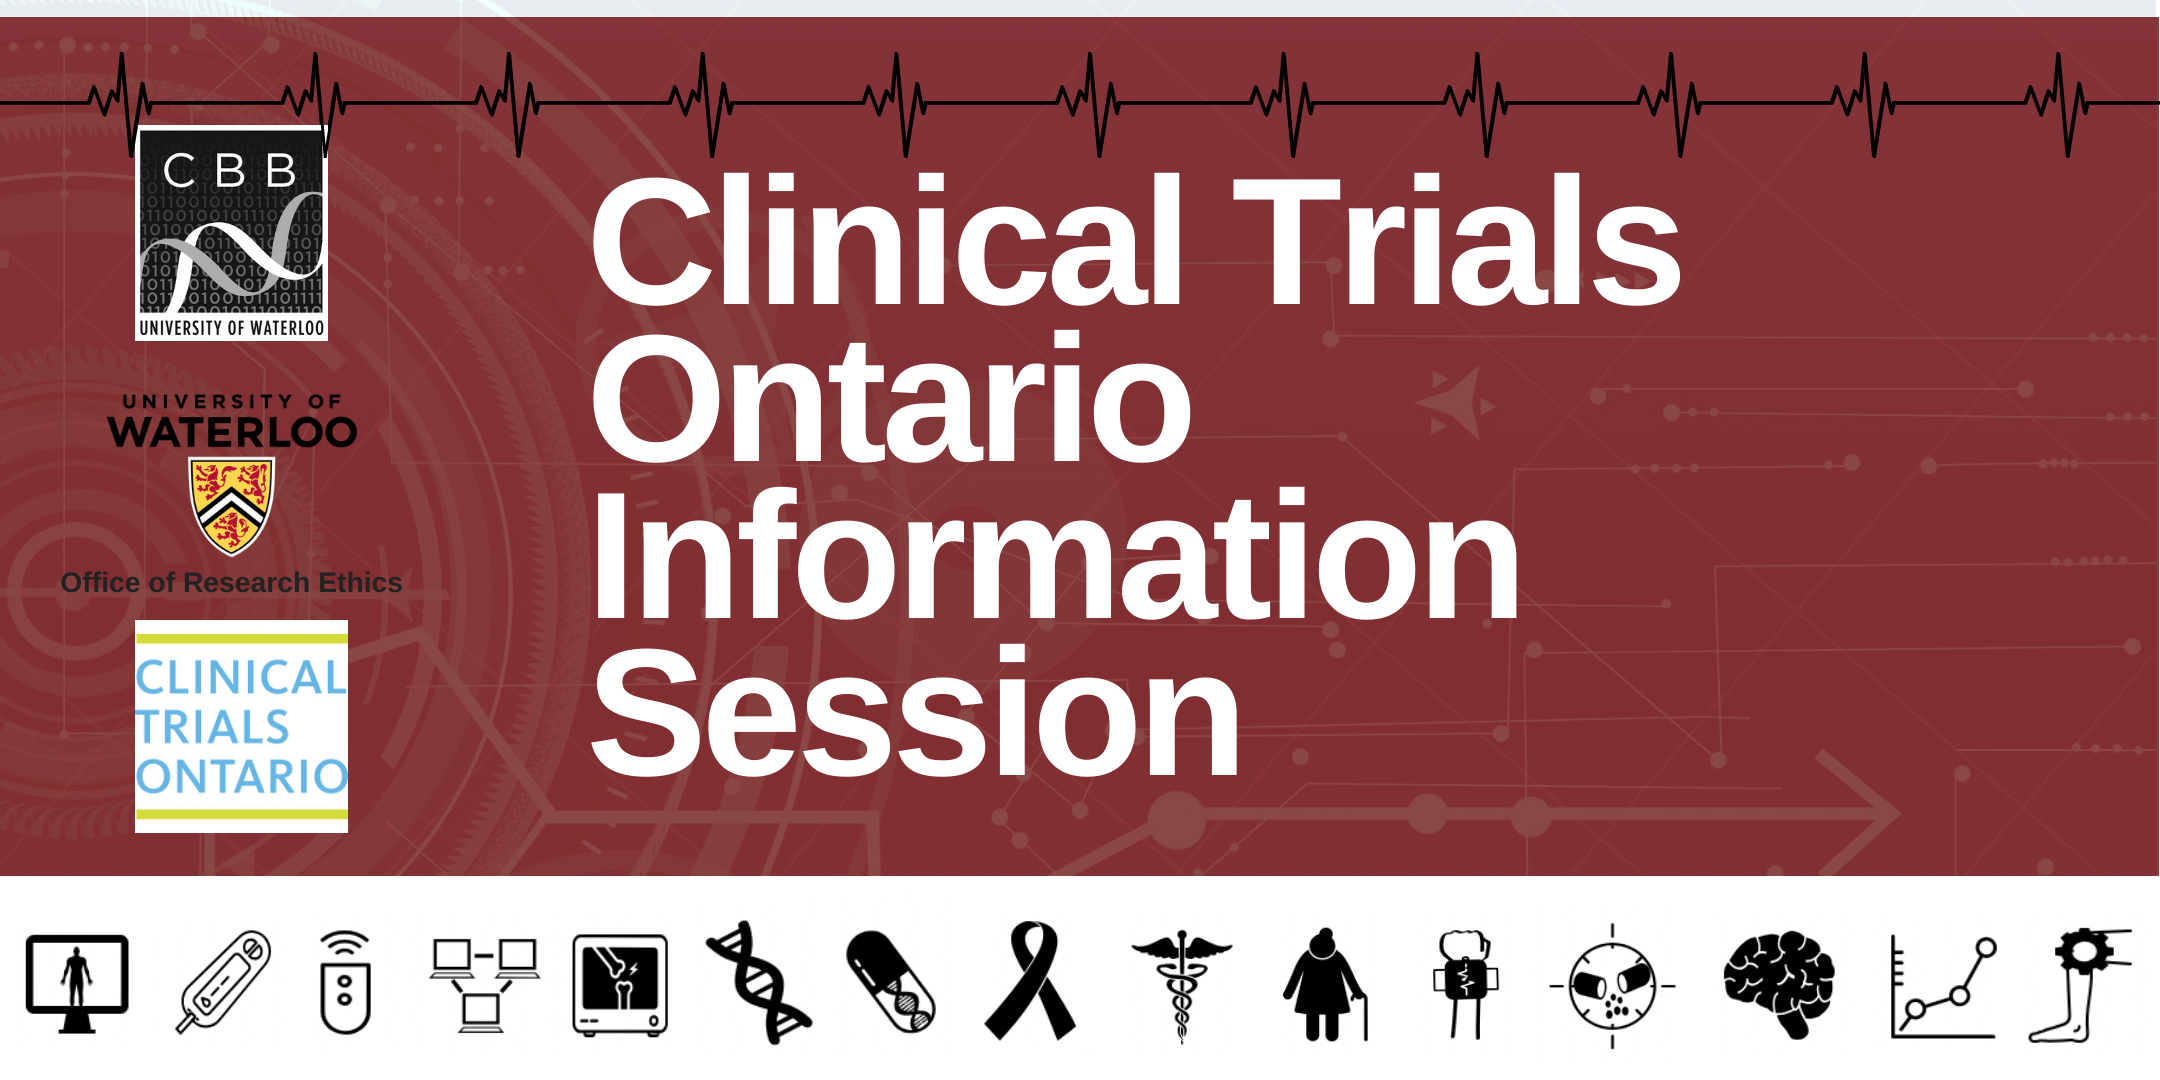 CBB Clinical trials Ontario poster